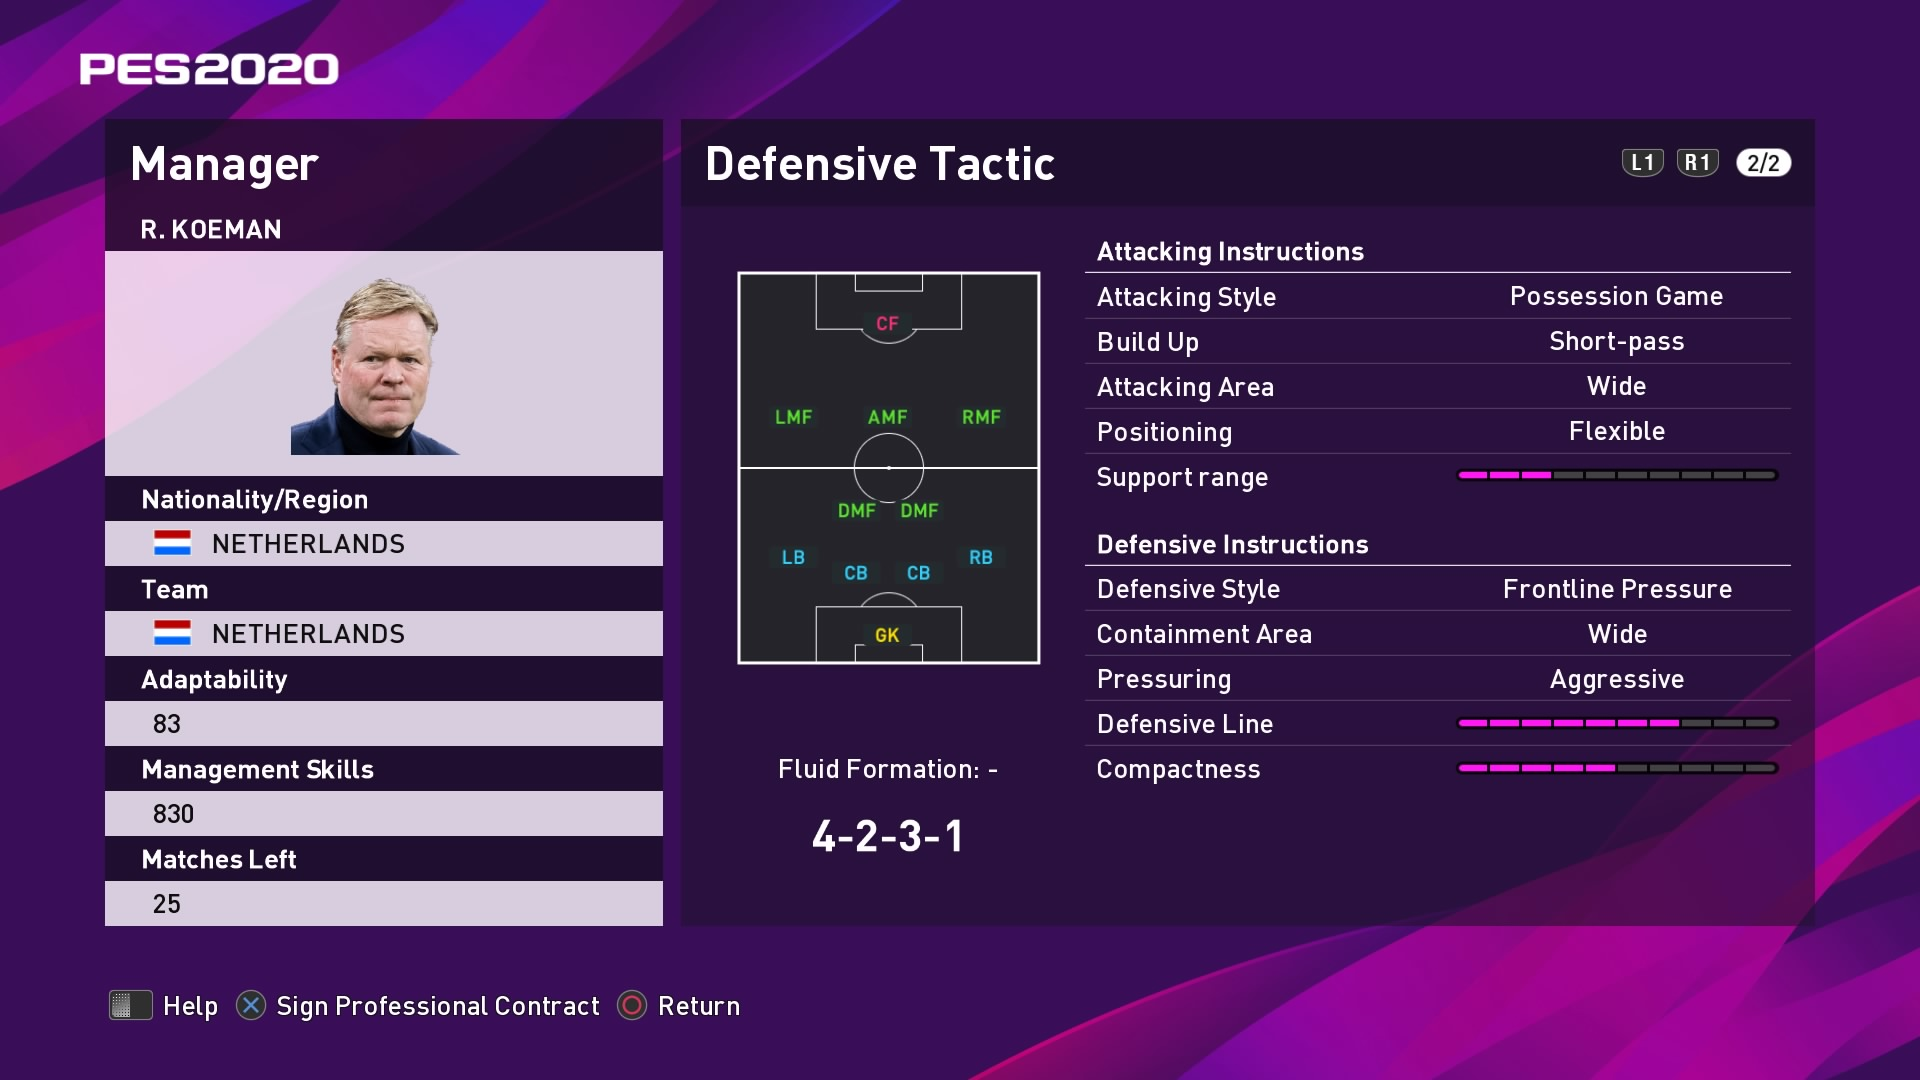 R. Koeman (3) (Ronald Koeman) Defensive Tactic in PES 2020 myClub